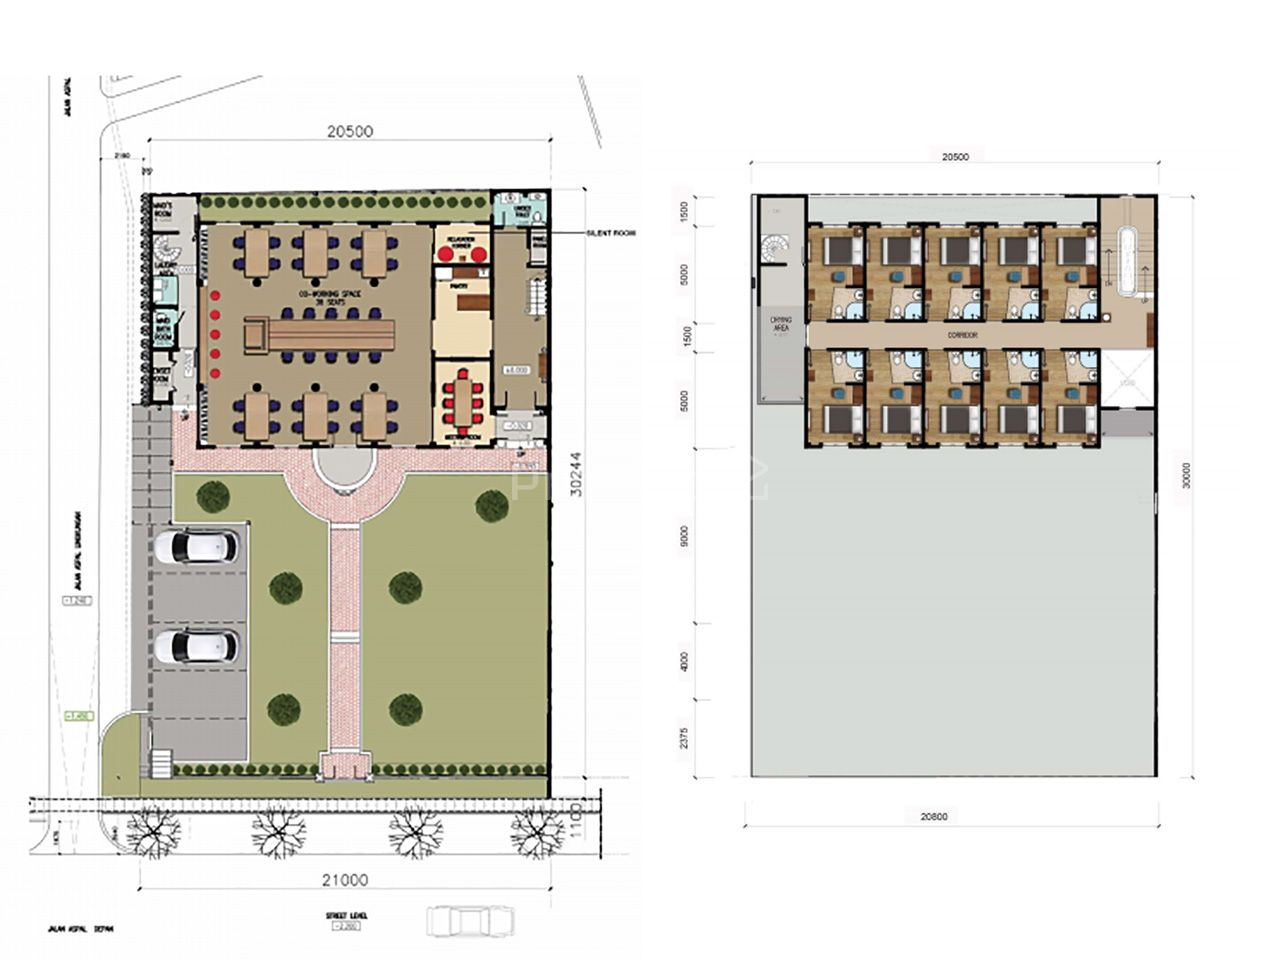 Land and Commercial Building Investment in North Meruya, Kembangan